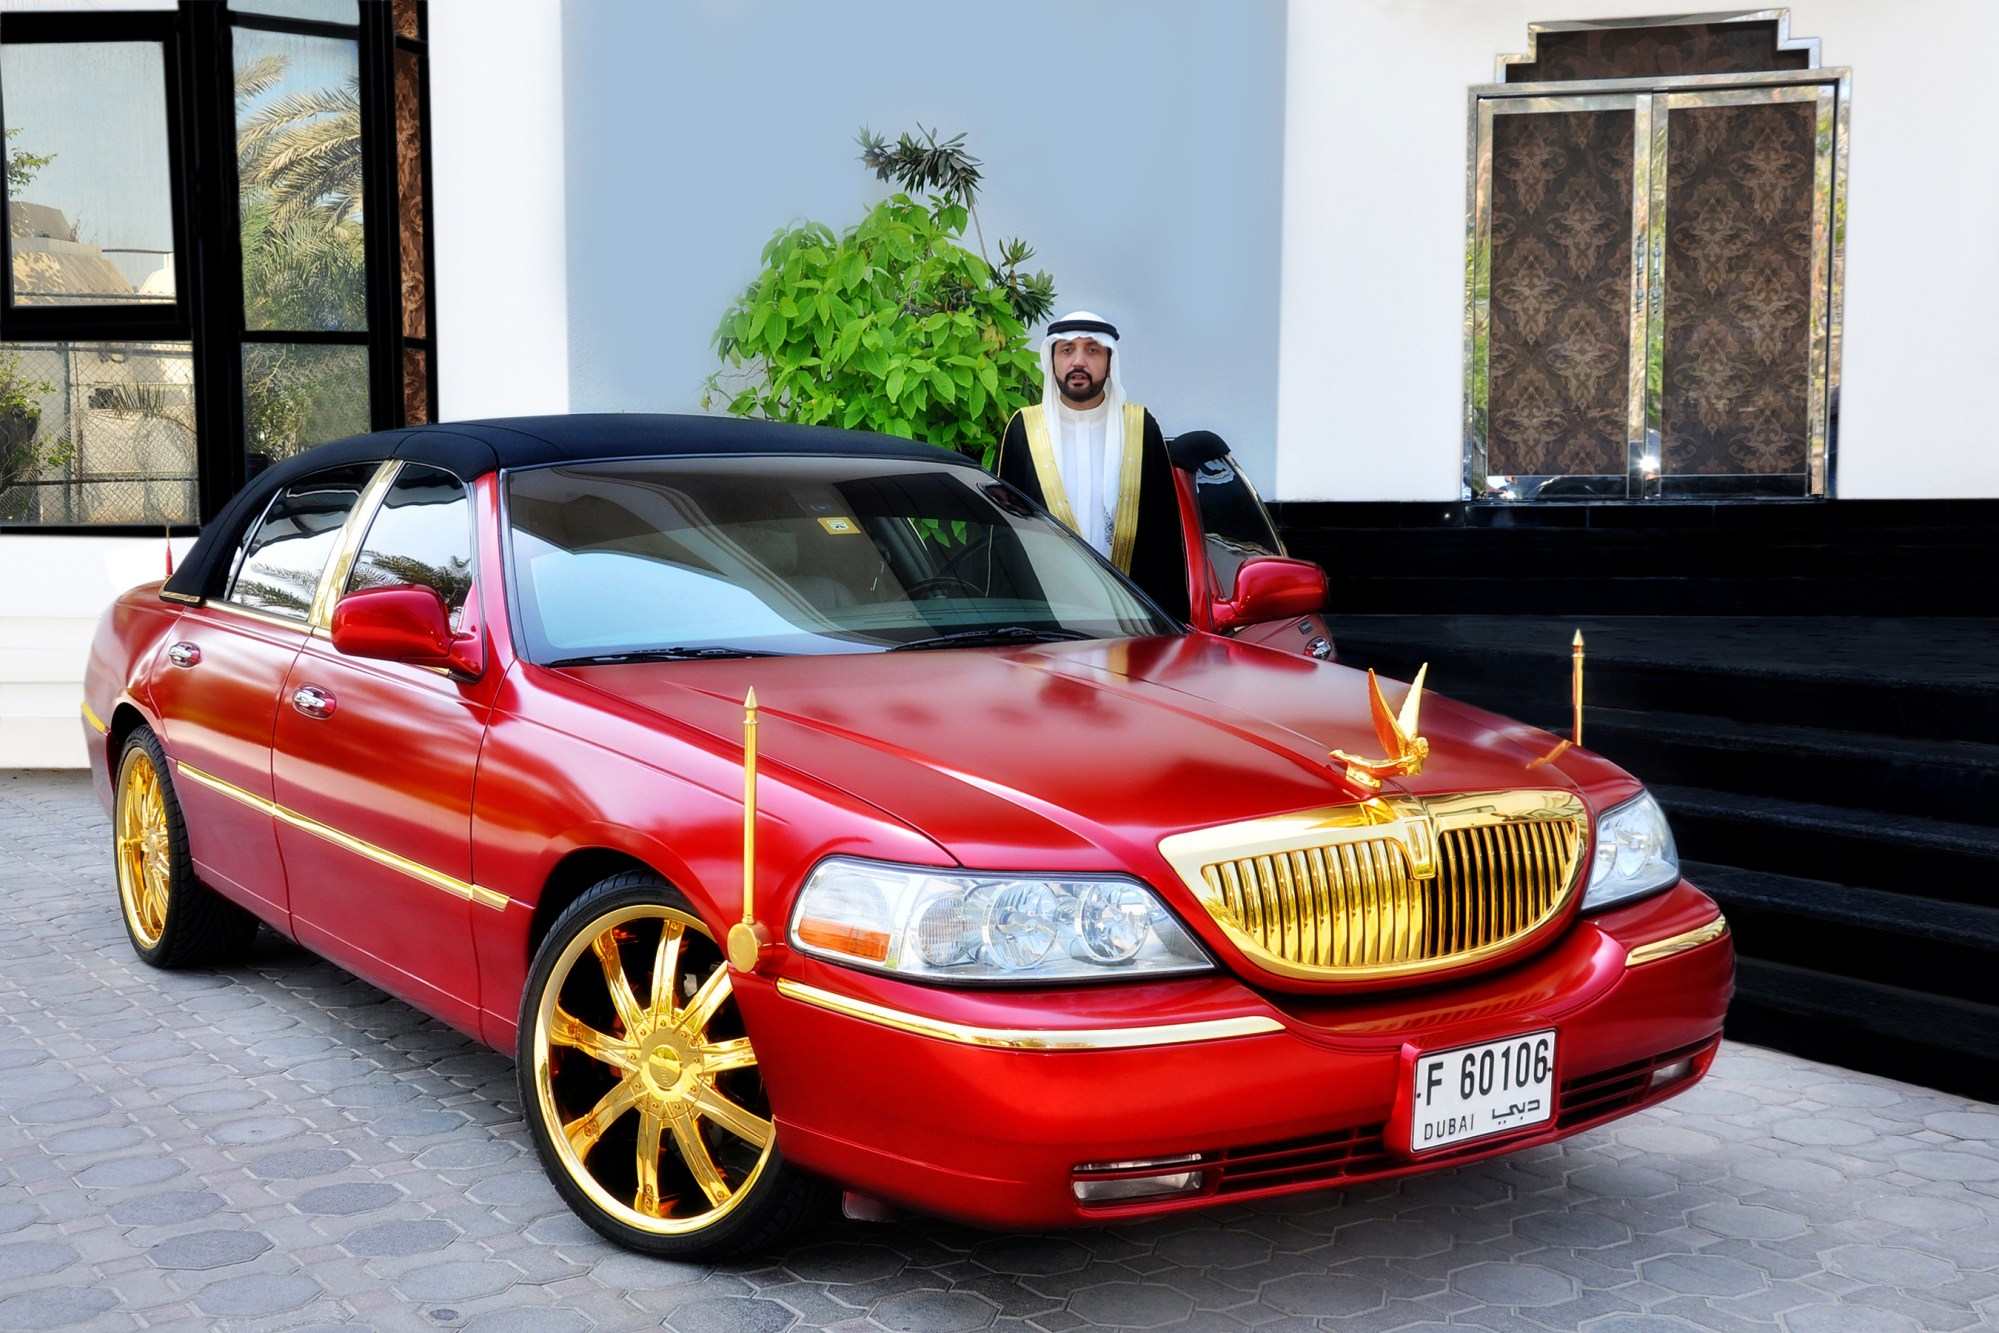 hight resolution of file lincoln town car cartier edition with 24 carat gold plated jpg rh commons wikimedia org 2003 lincoln town car cartier edition lincoln town car cartier